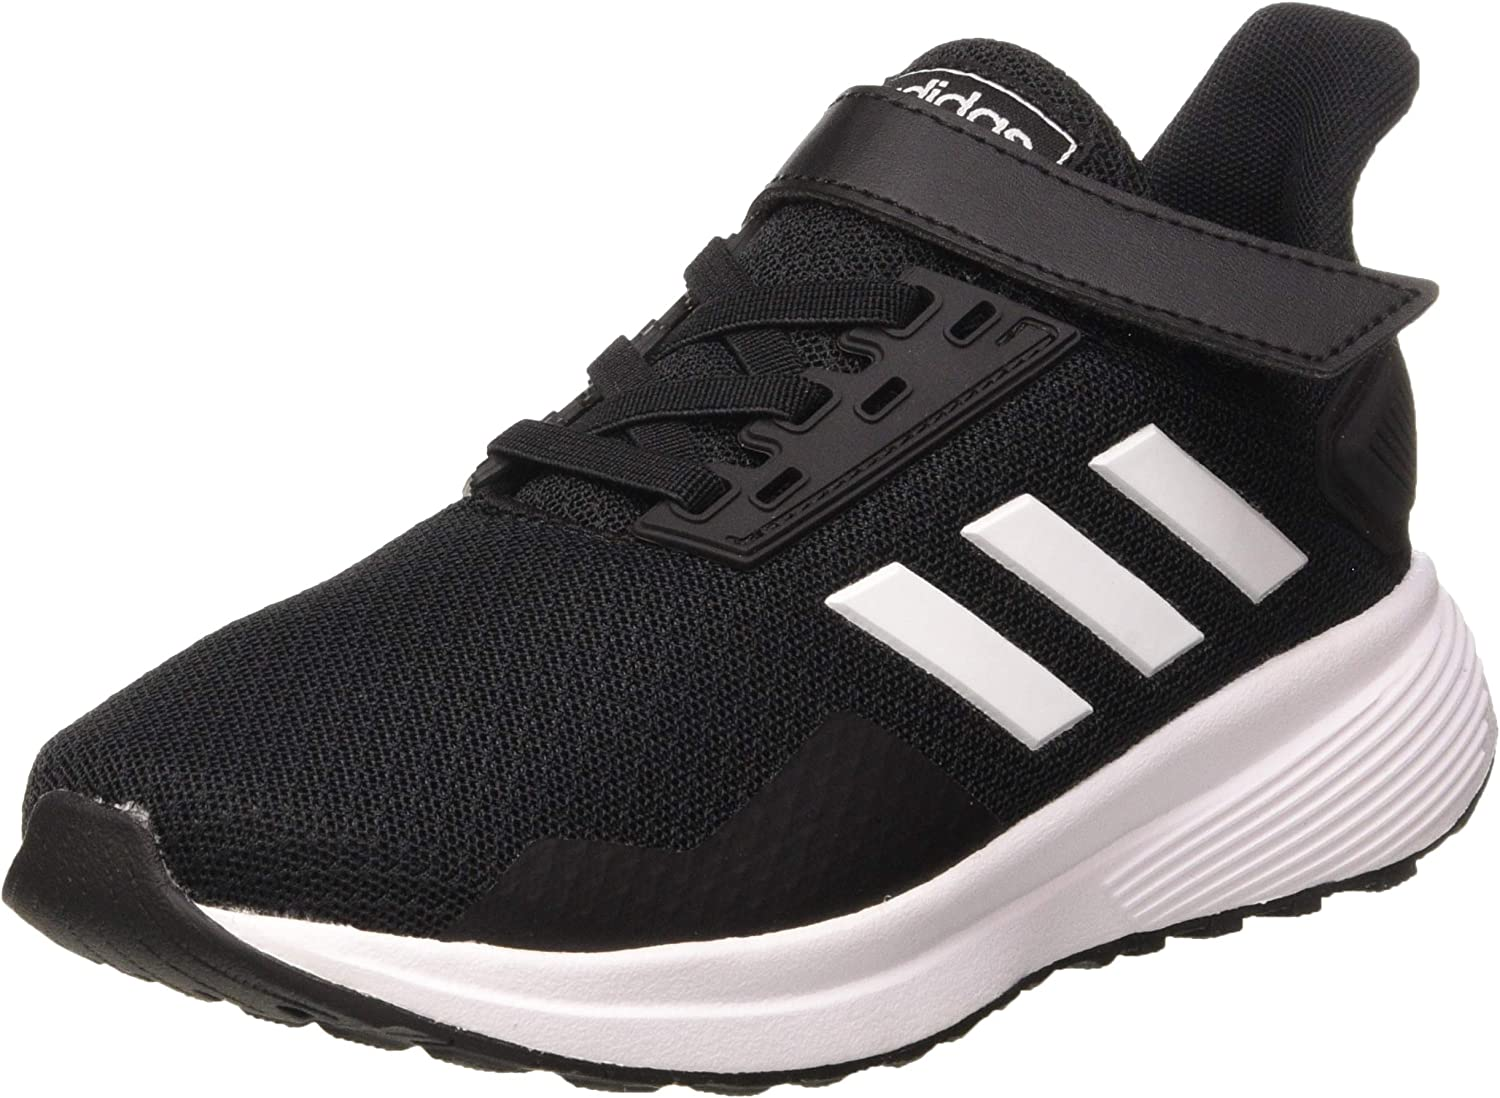 adidas shoes for children